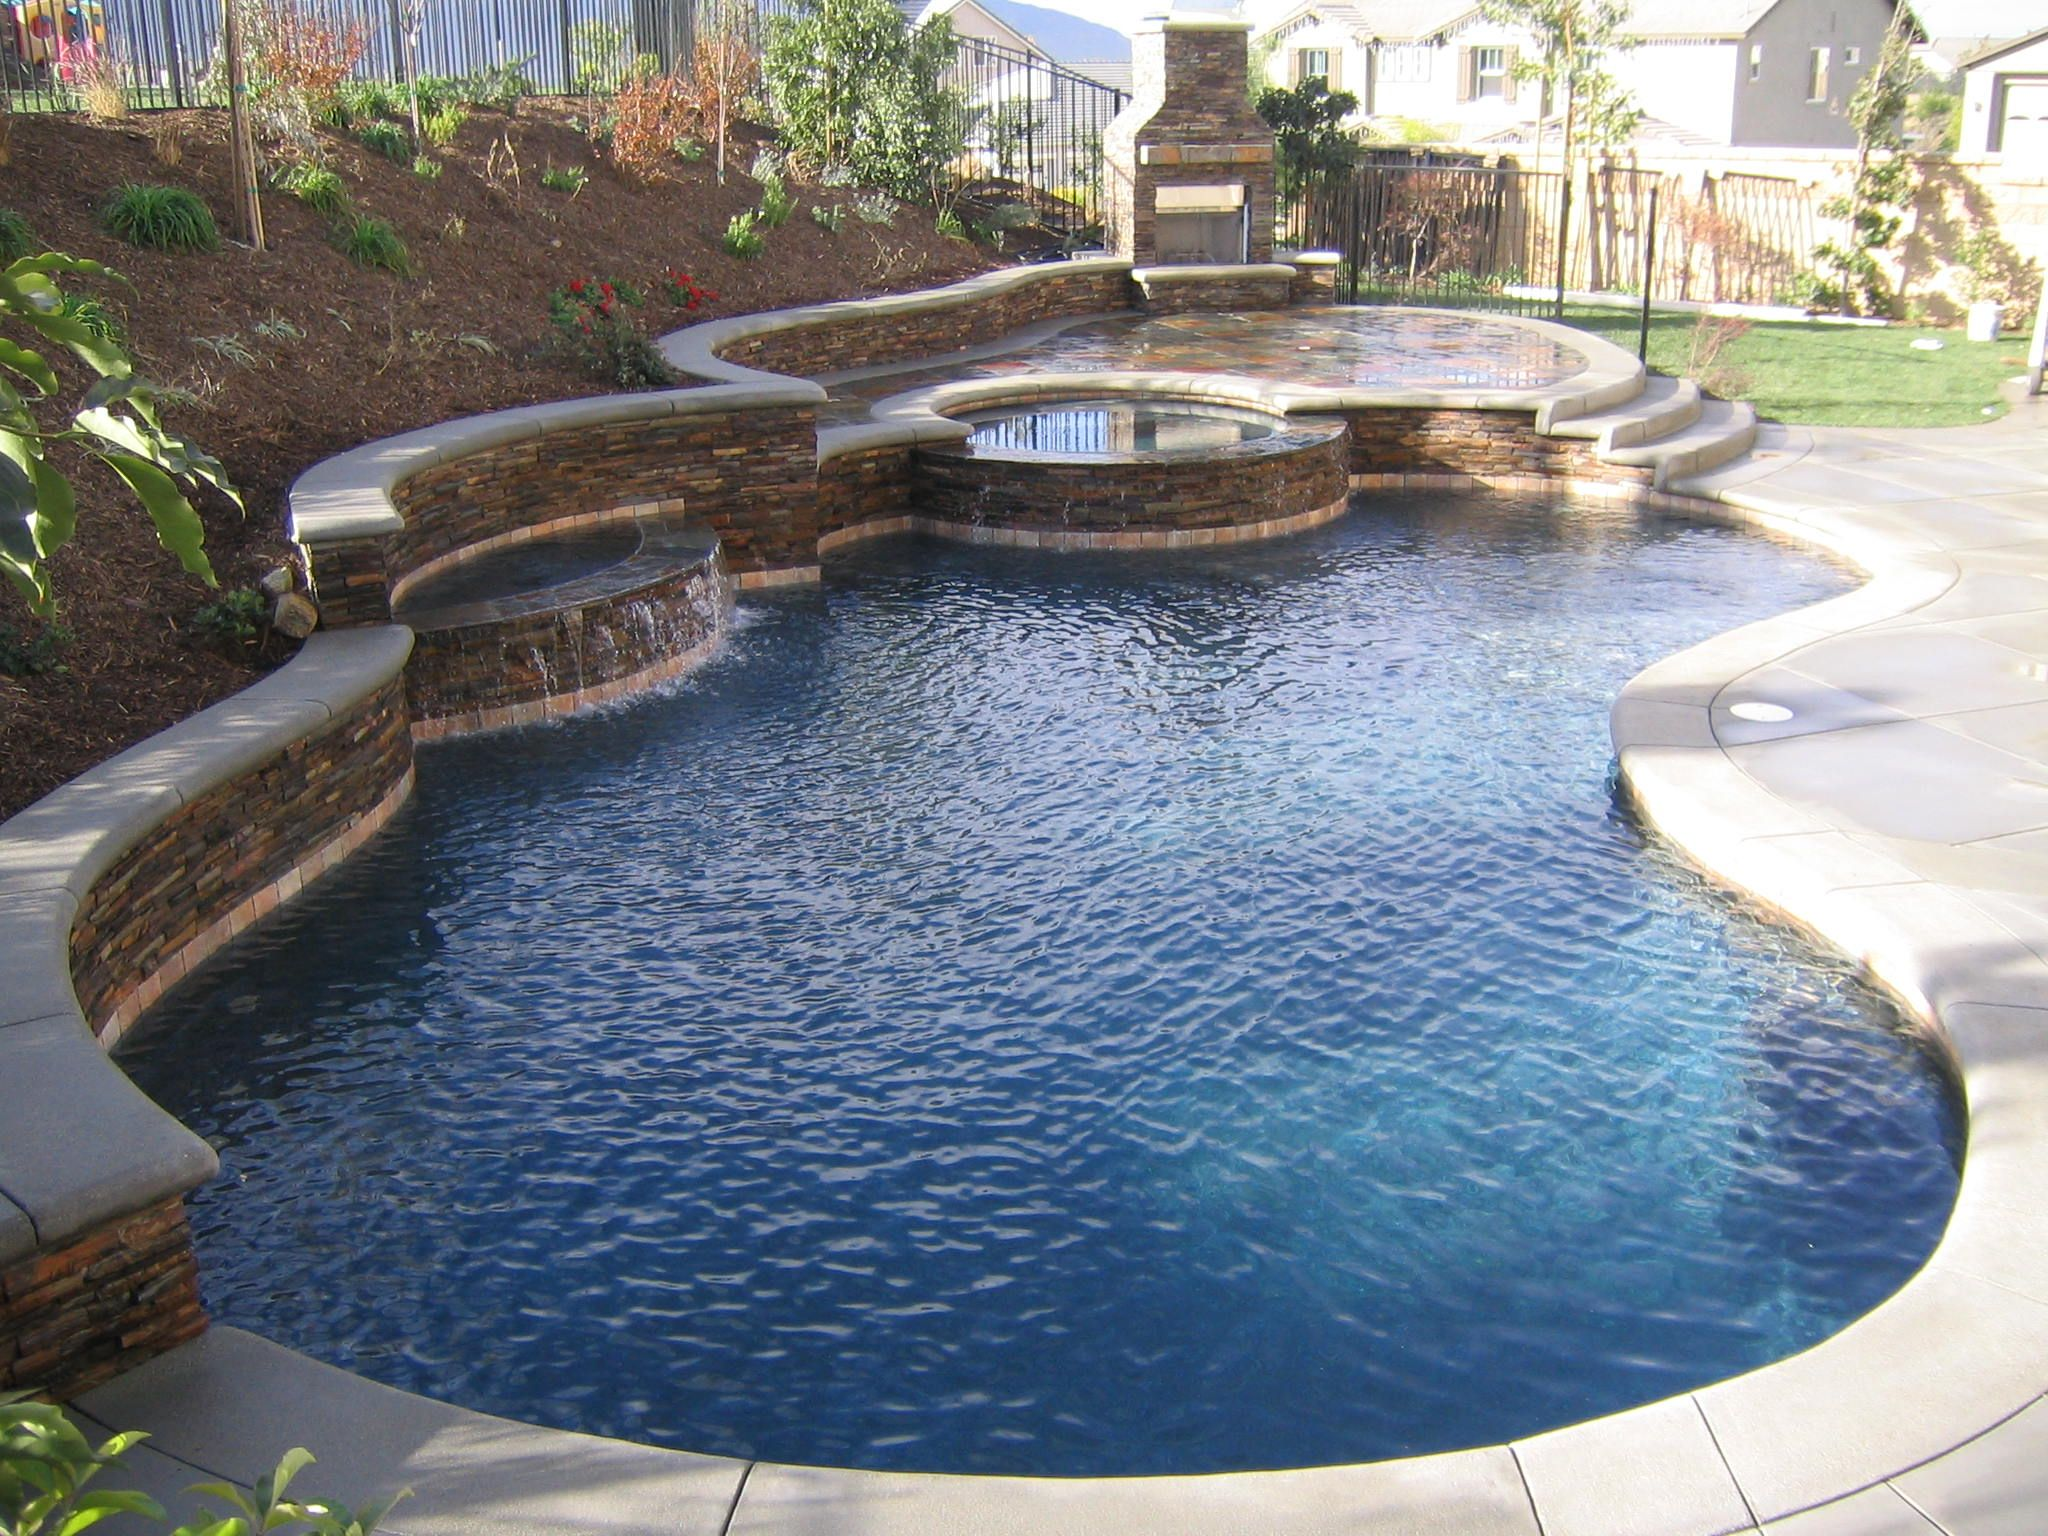 Pool Designs For Small Backyards | Pool & Landscape Design ...